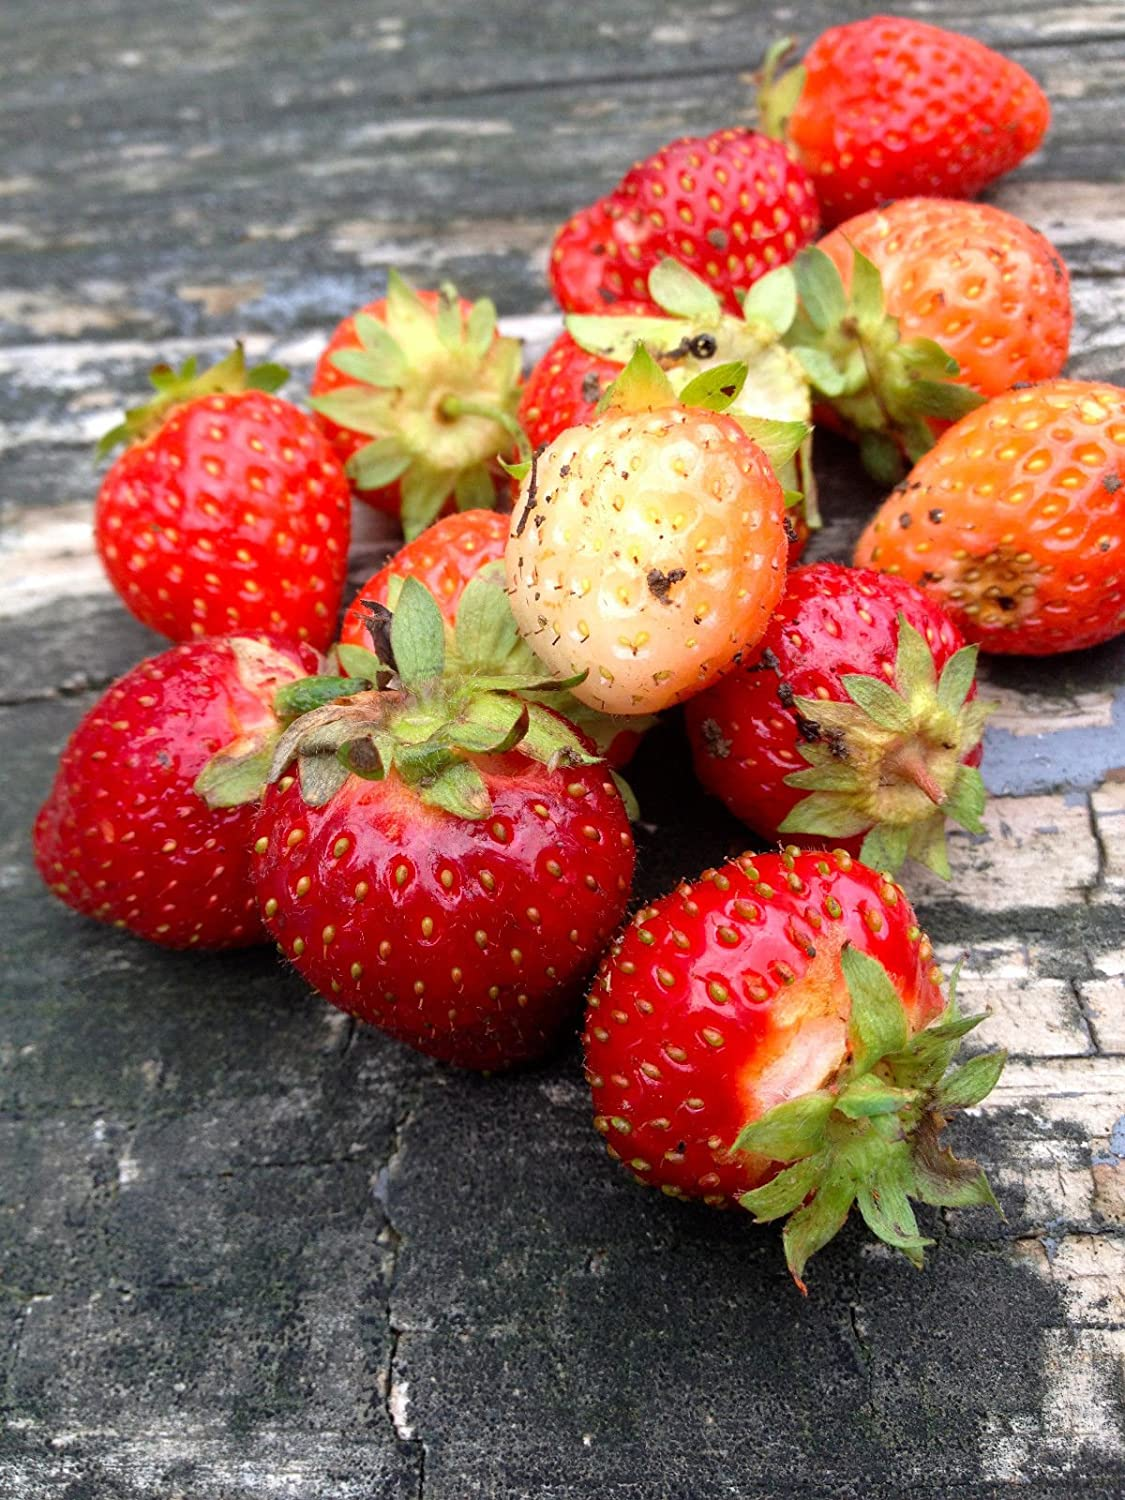 30 Super Sweet Strawberry Everbearing Plant Seeds